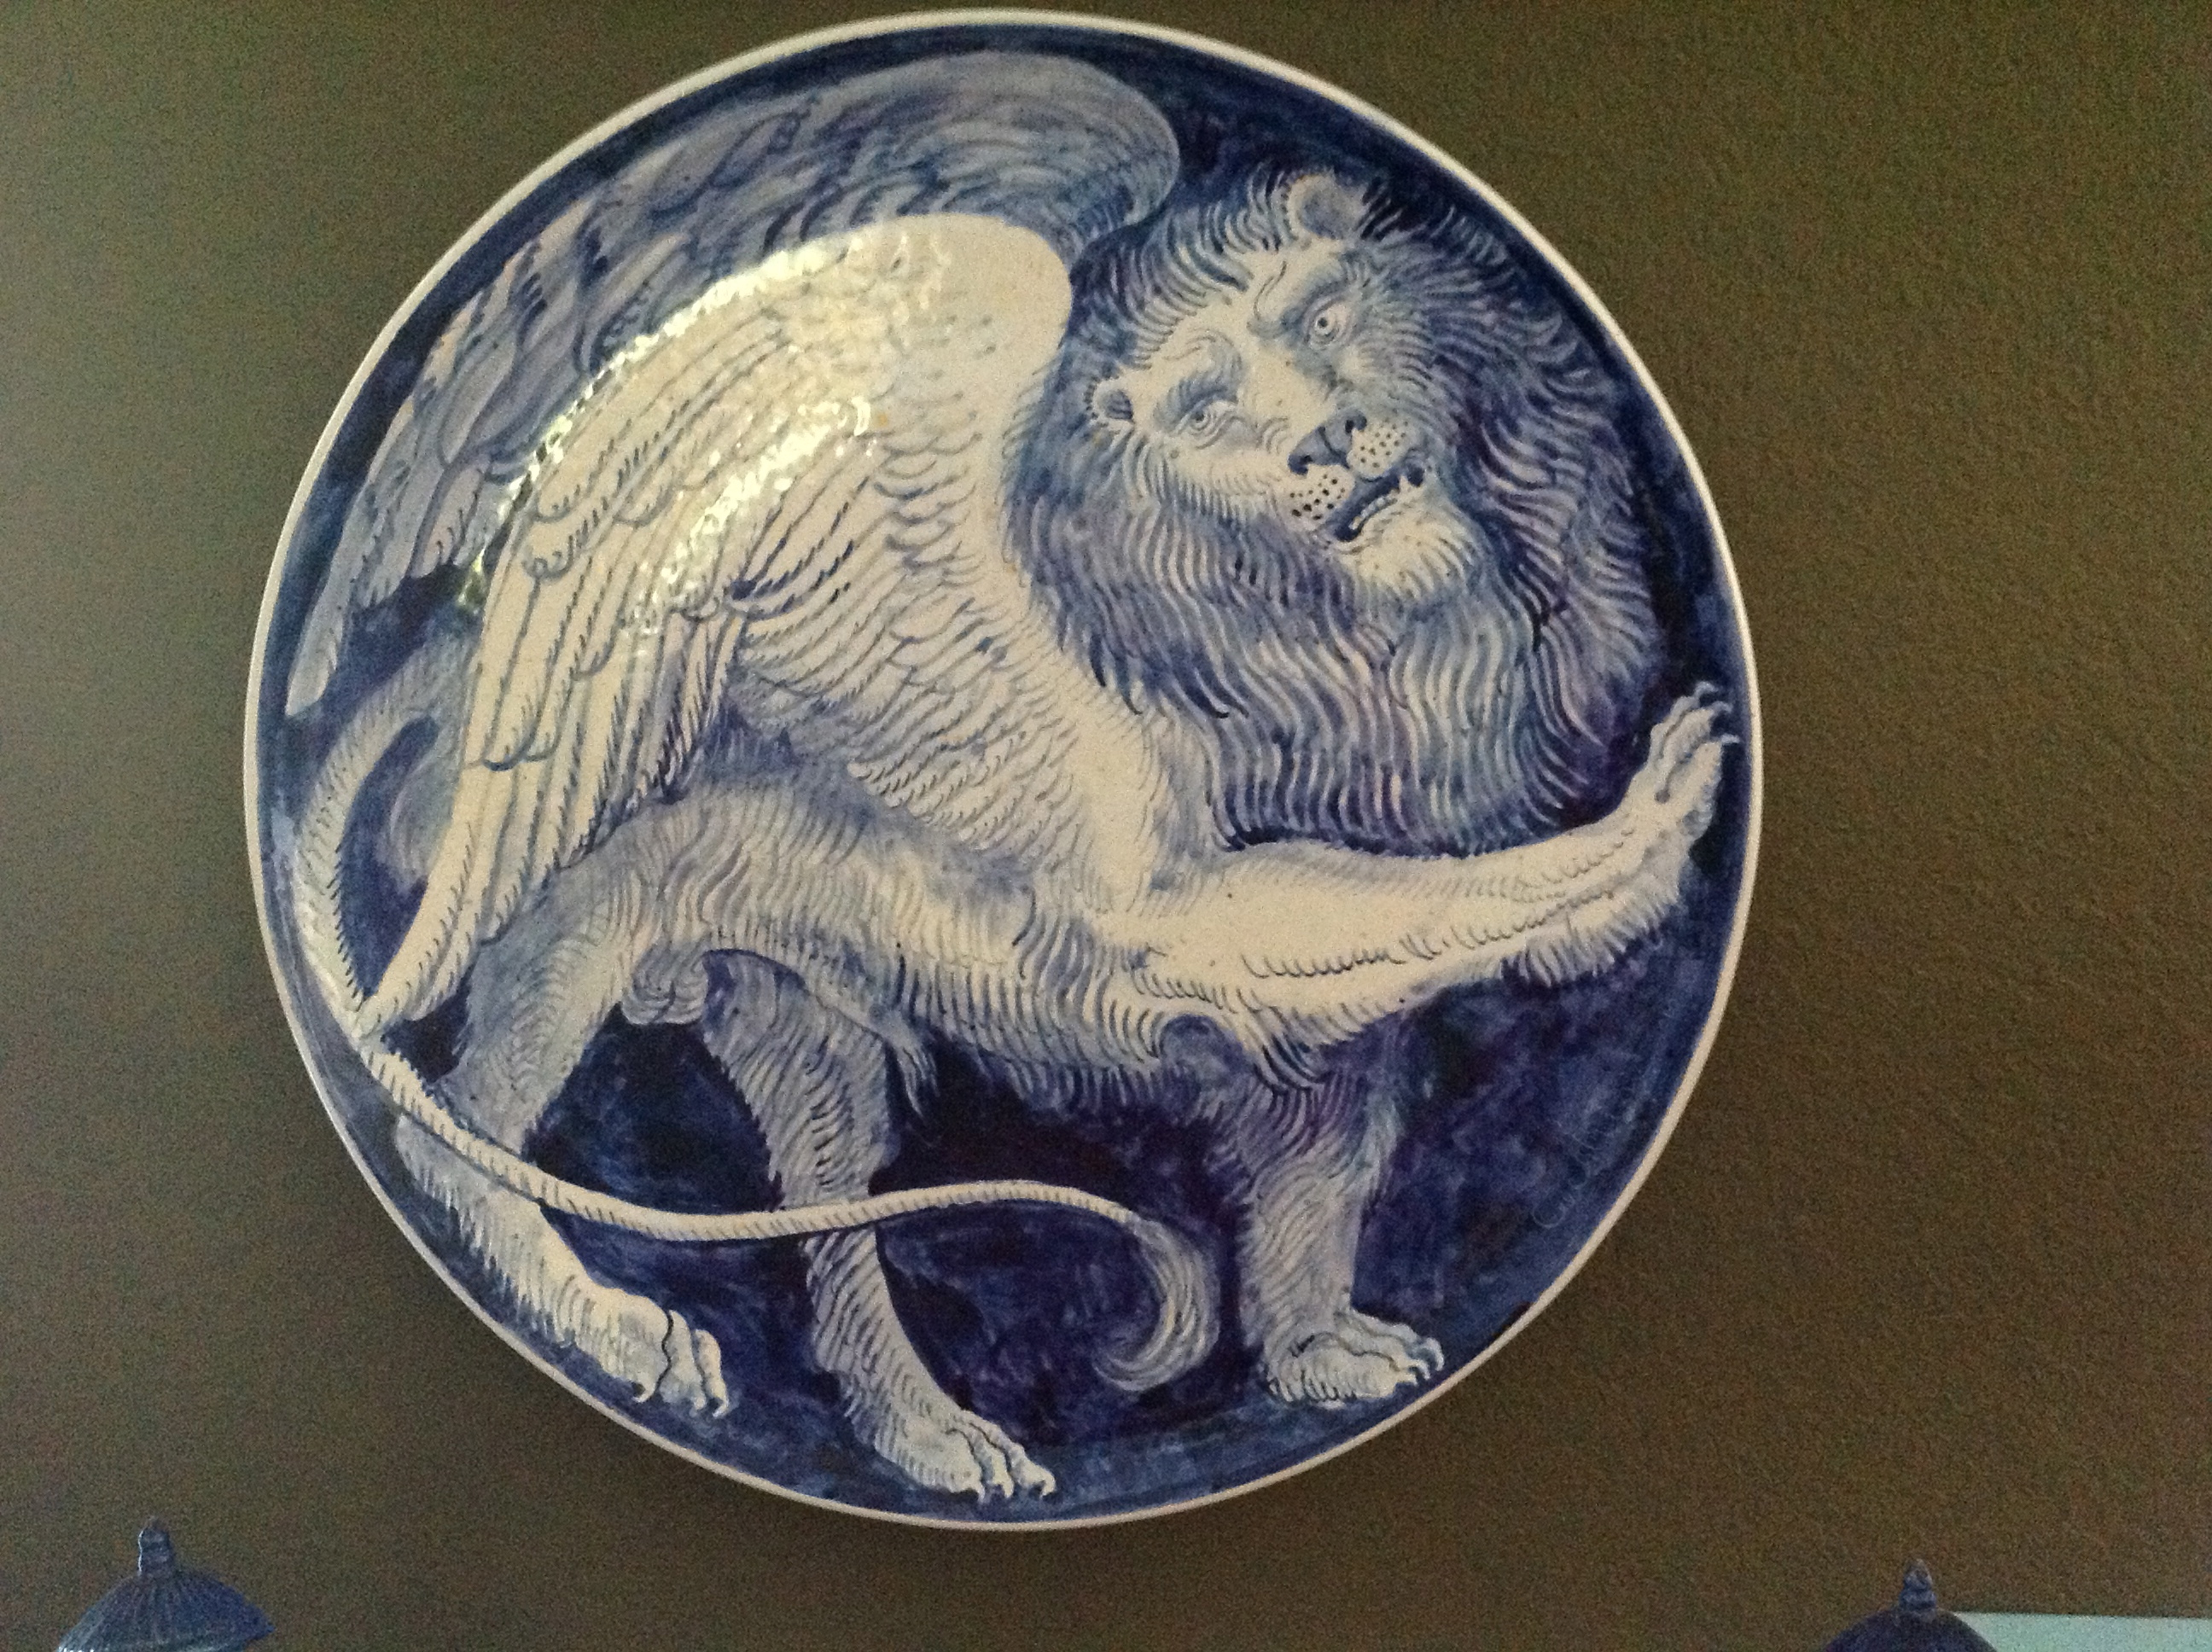 Winged Lion by Carlo Marchiori, maiolica, 19 inches diameter (Photo P. F. Sommerfeldt 2012)